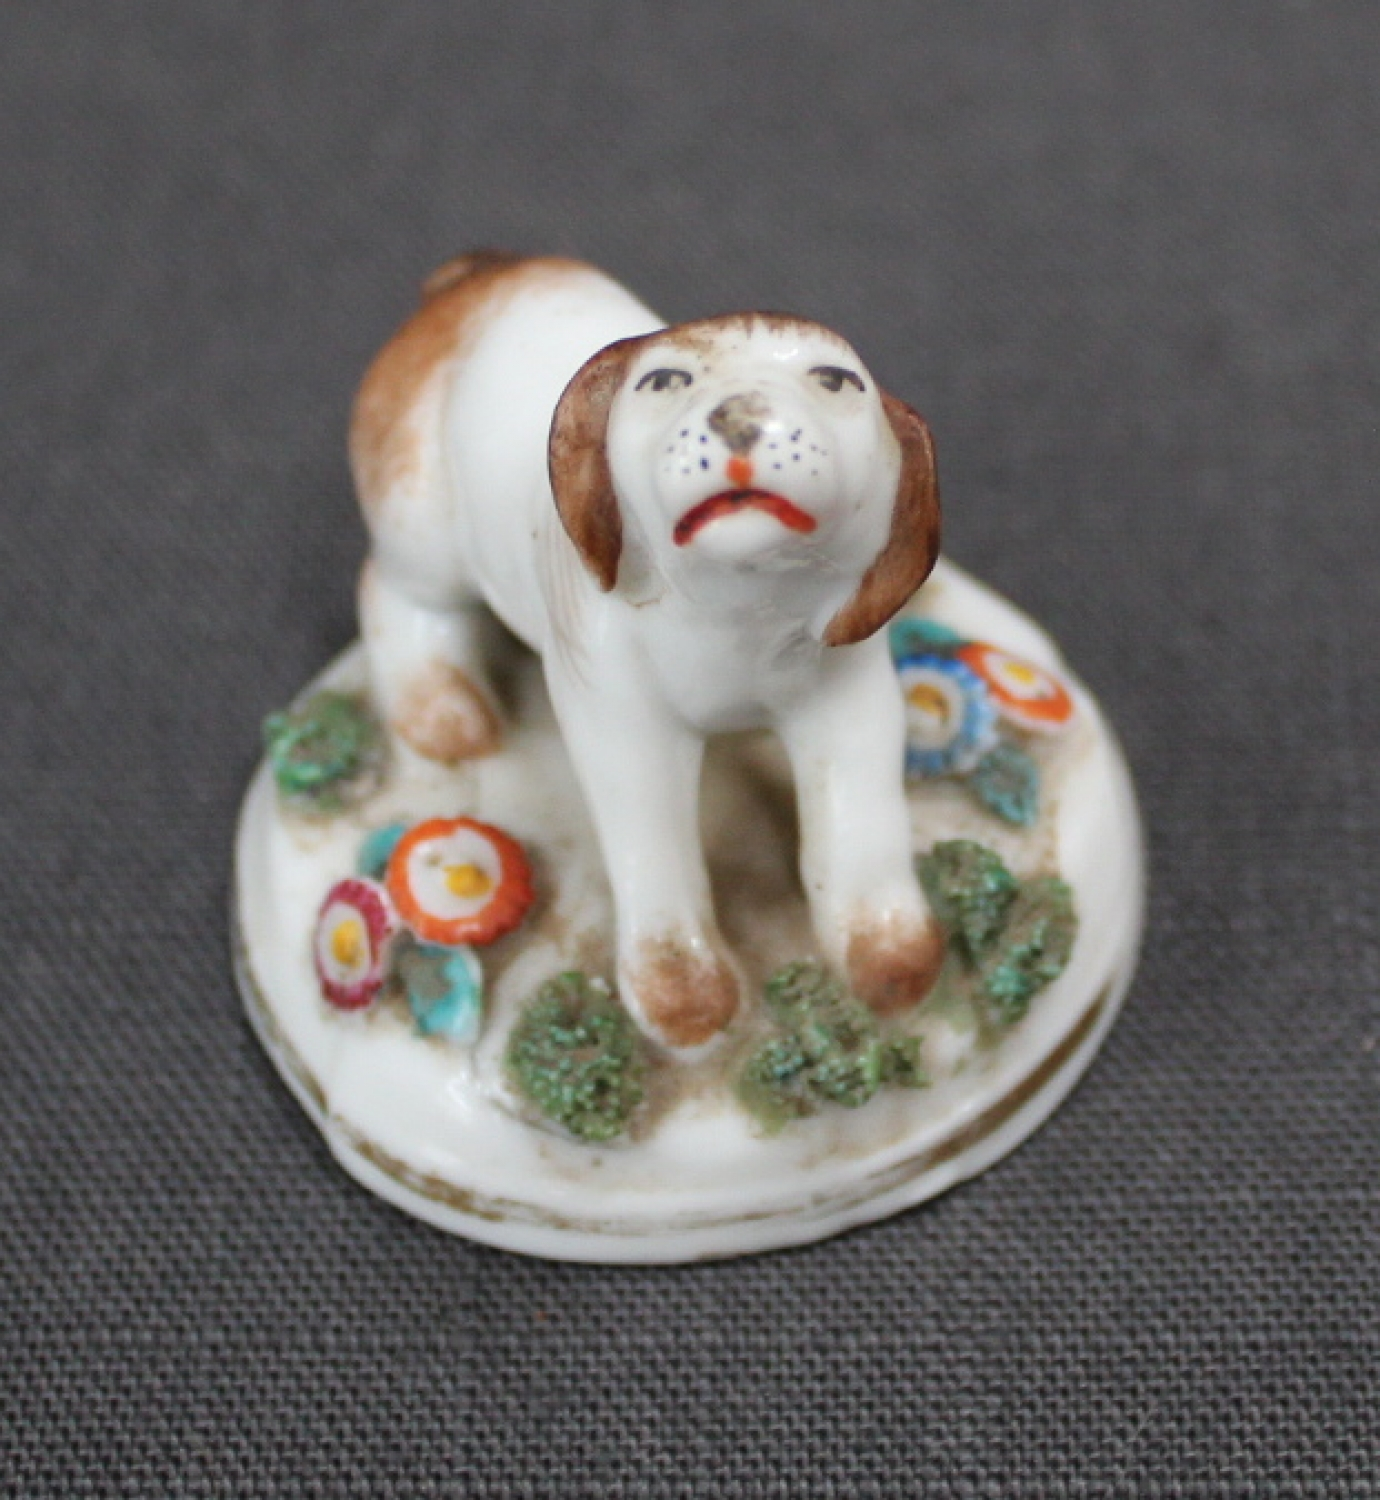 A small Samson figure of a dog